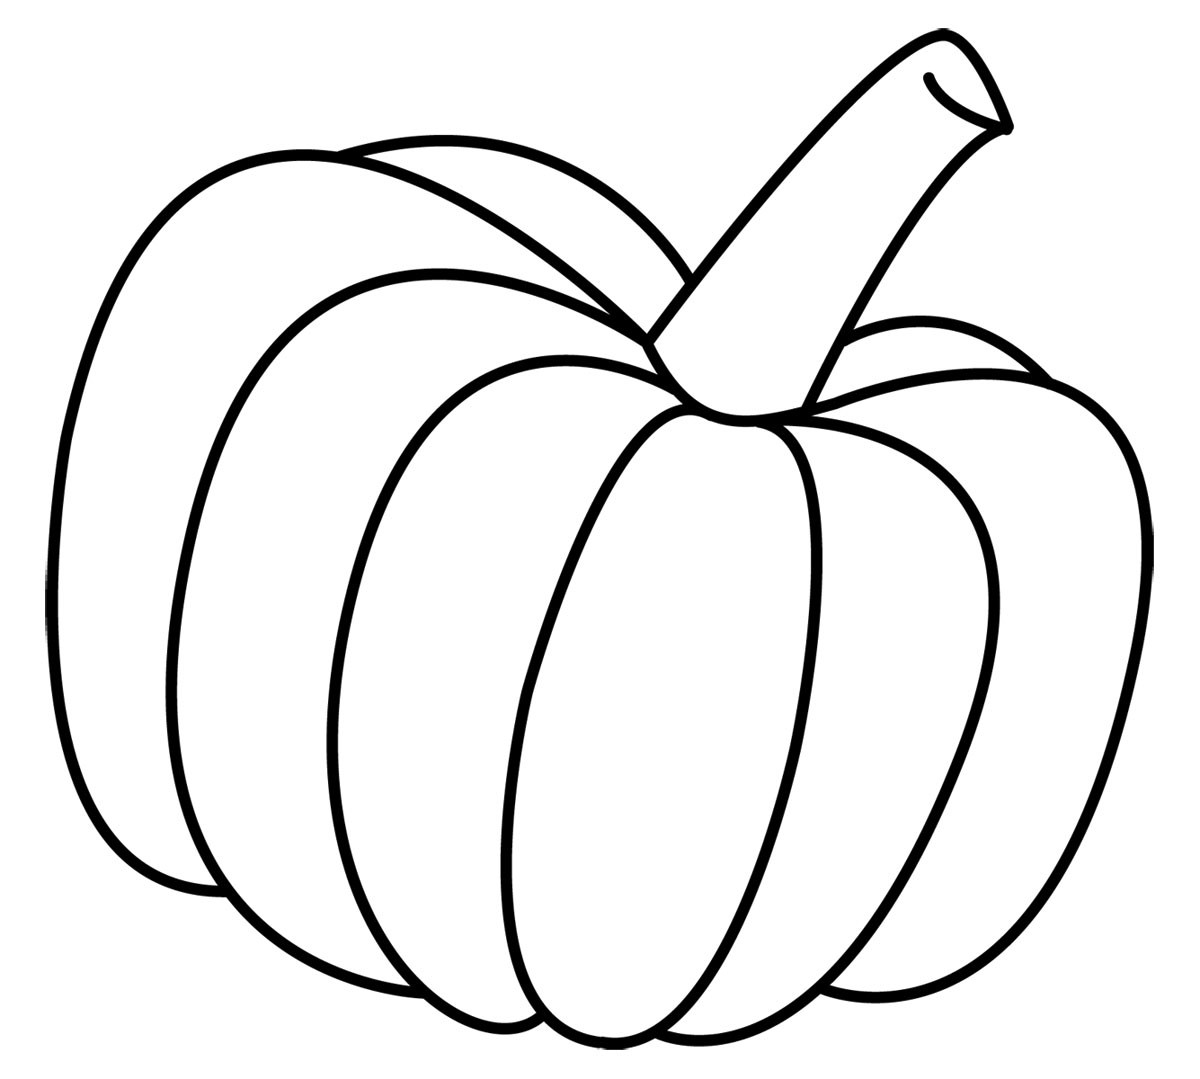 Zucchini clipart black and white photos good pix gallery kid.